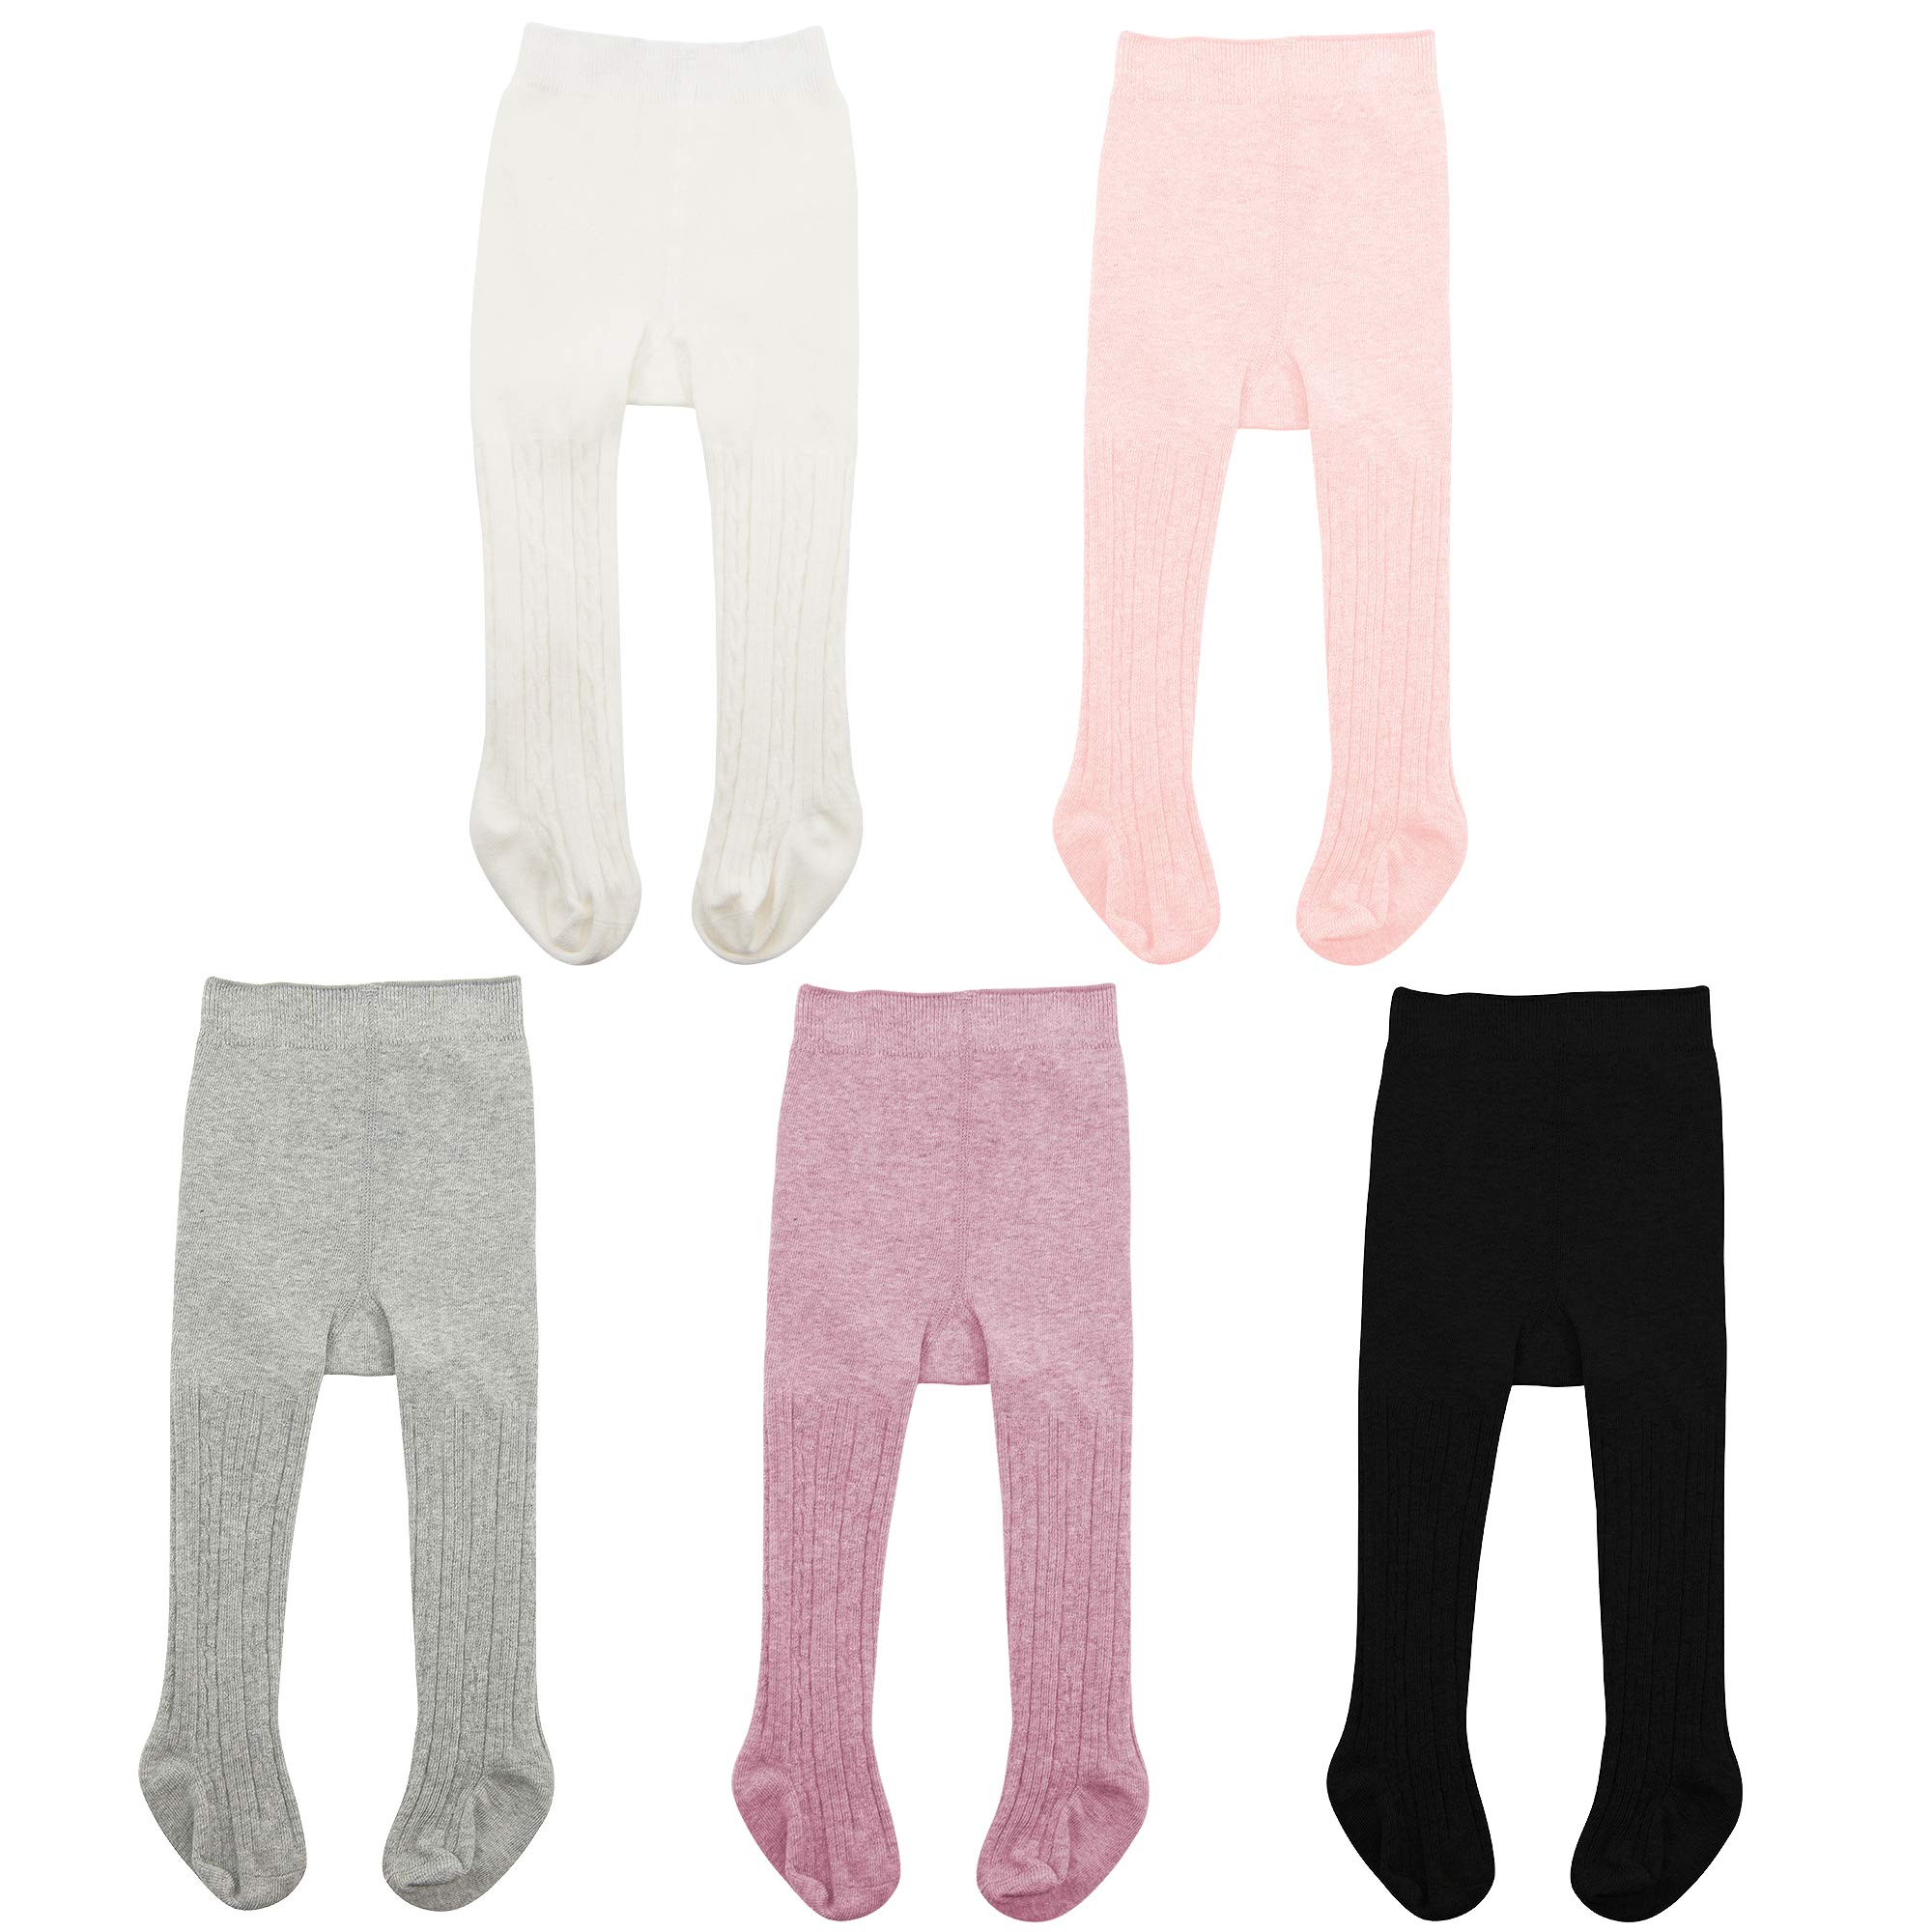 Zando Baby Girls Tights Infant Soft Seamless Cable Knit Tights Cotton Leggings Stockings Baby Girls Winter Clothes Toddler Warm Socks 5 Pack - Colorful Mixed B X-Large/2-4 Year by Zando